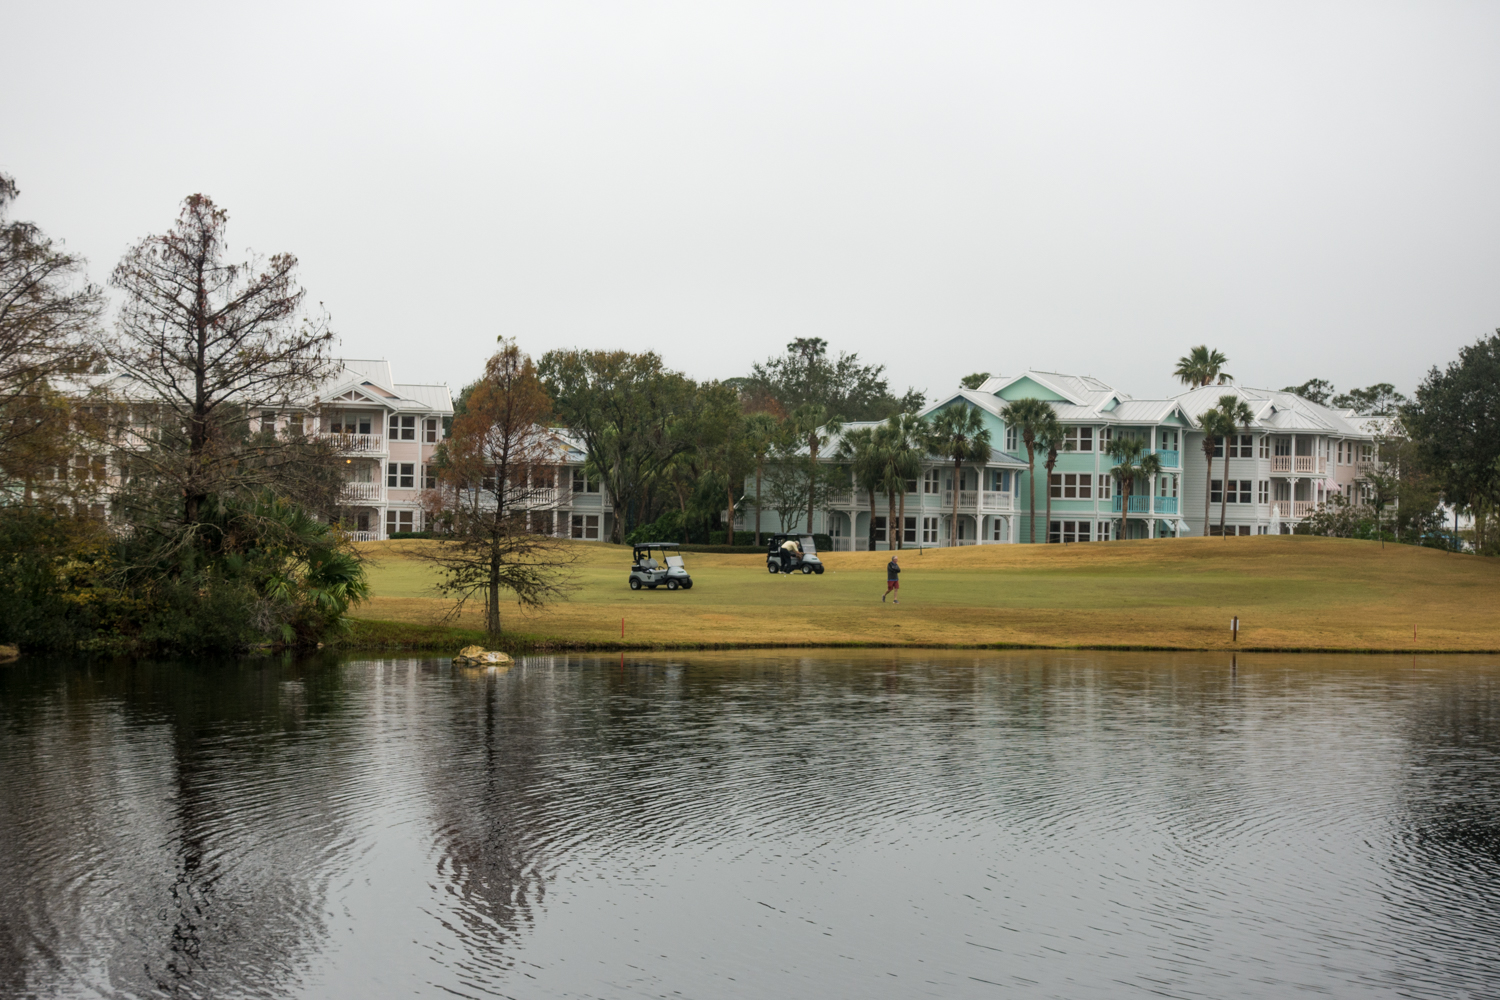 If you love golf, be sure to schedule a tee time at one of Disney's golf courses.